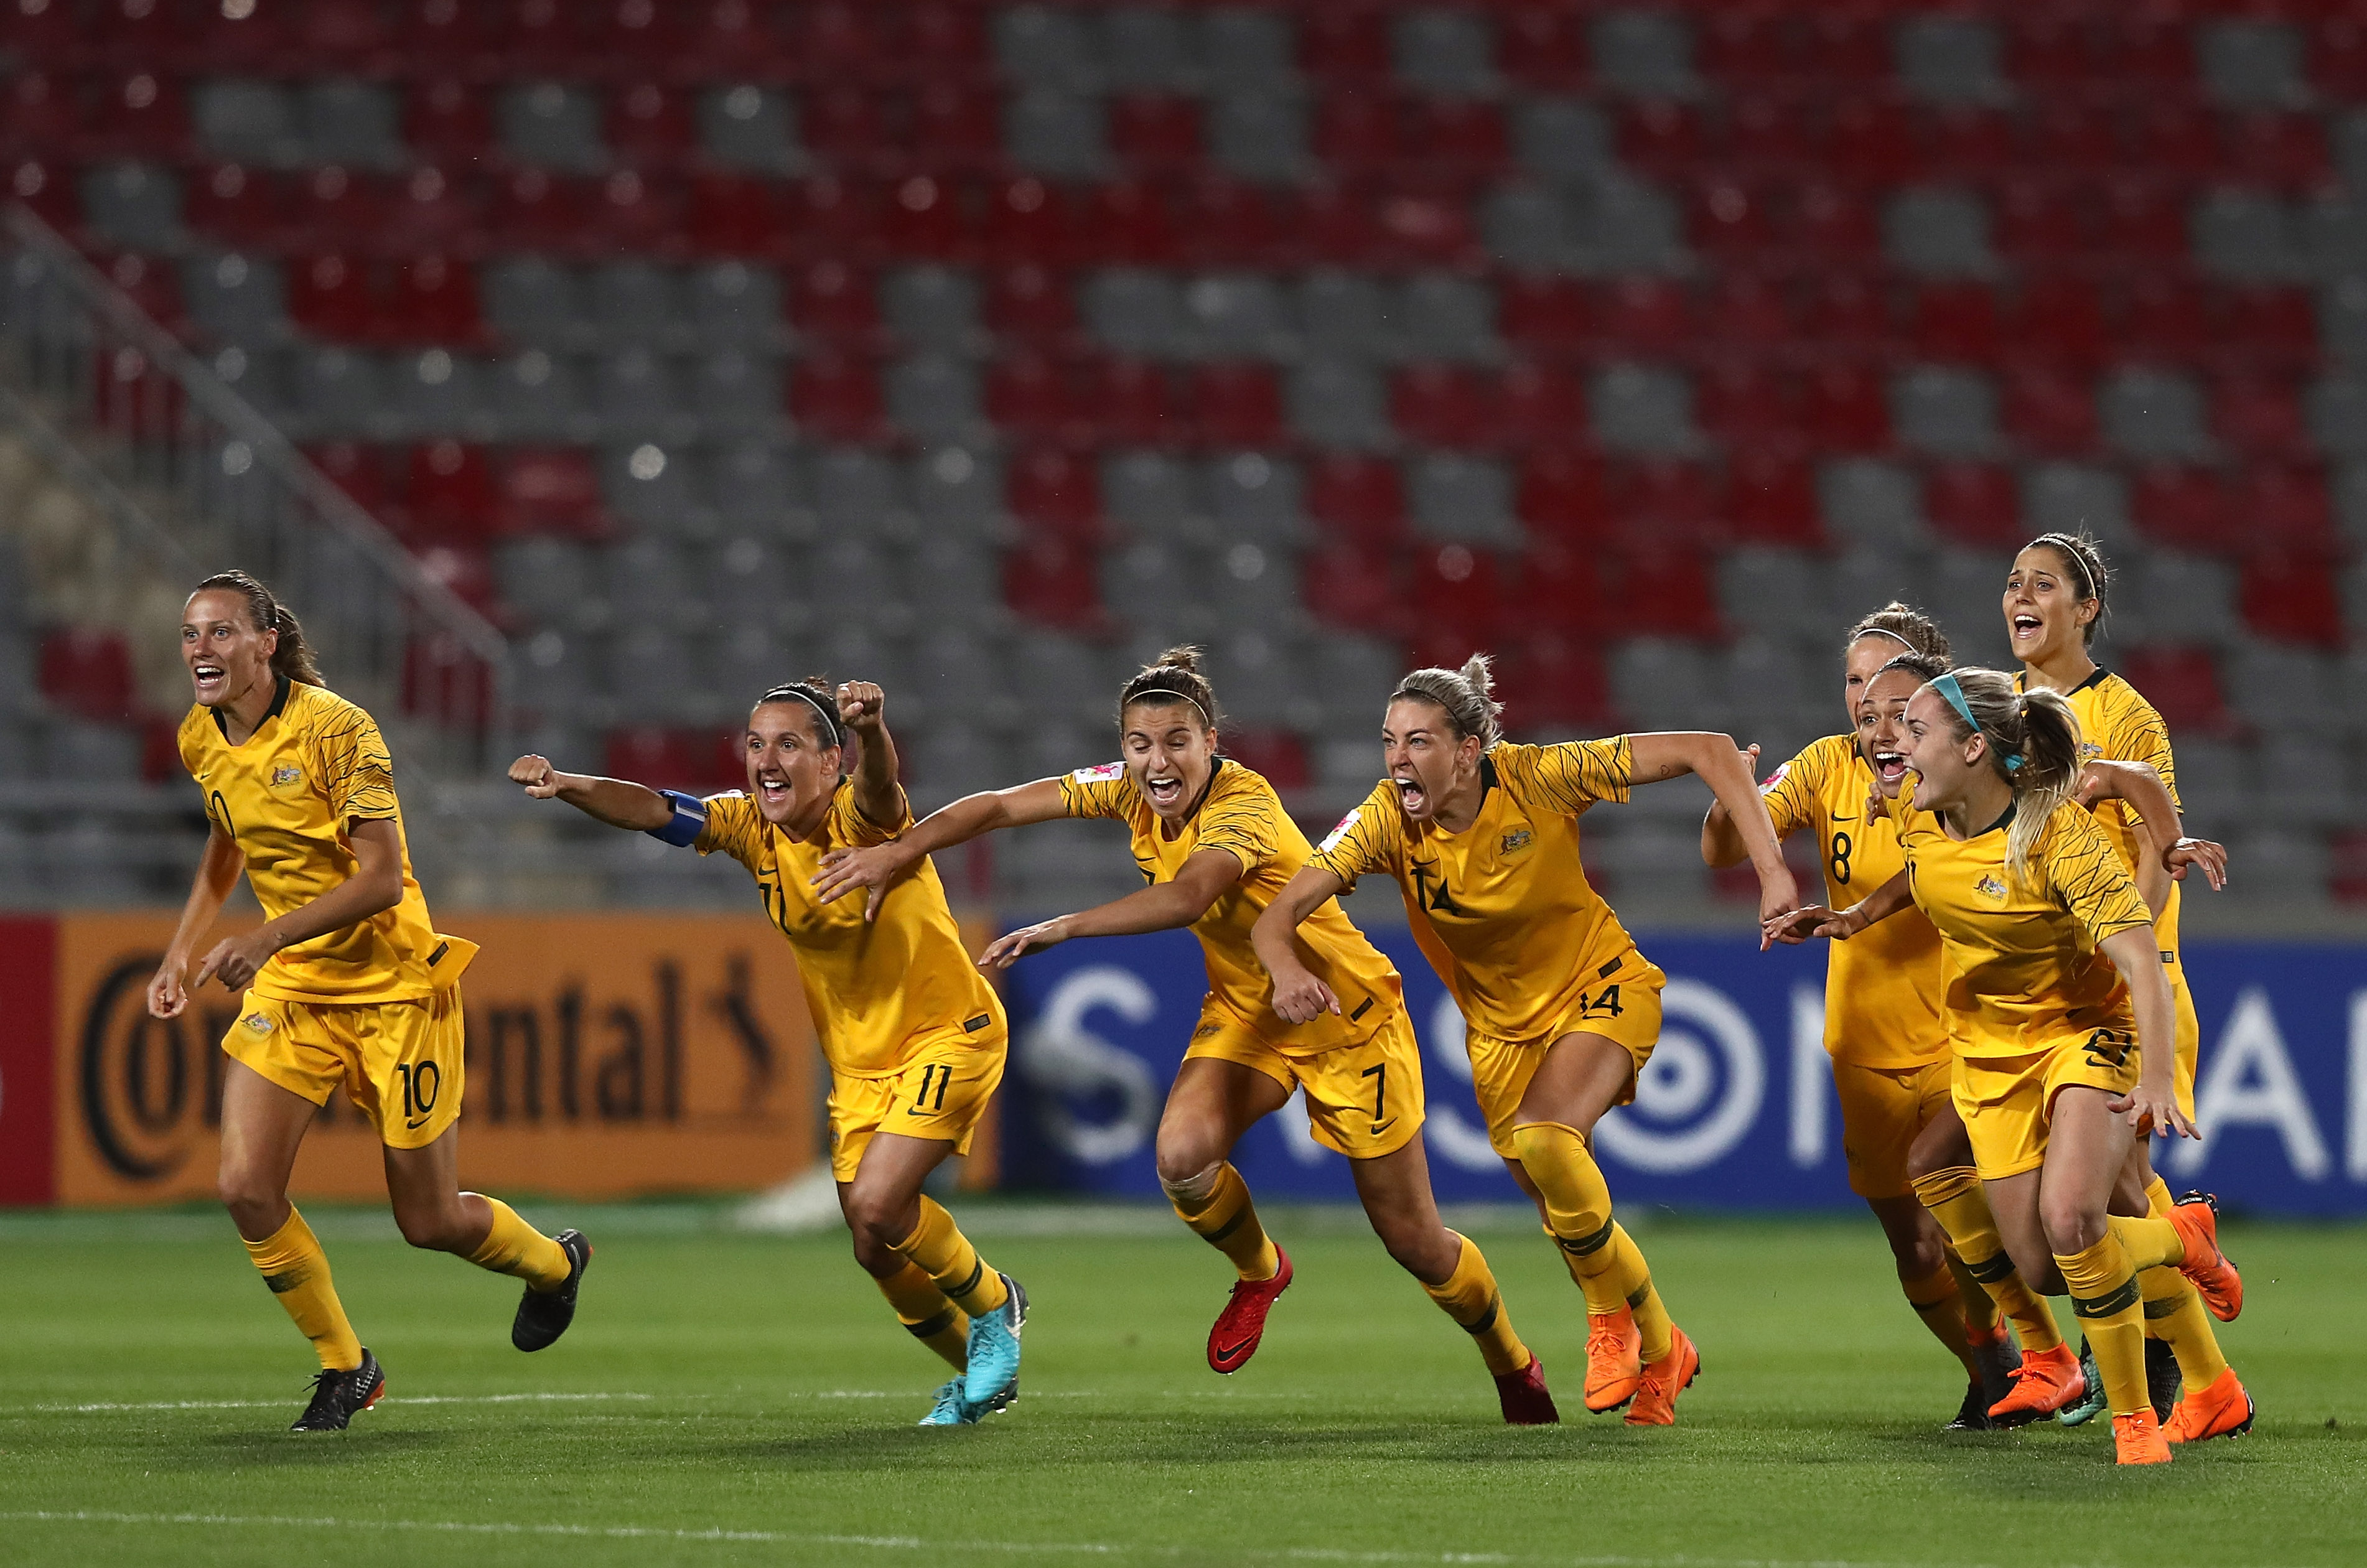 Matildas team